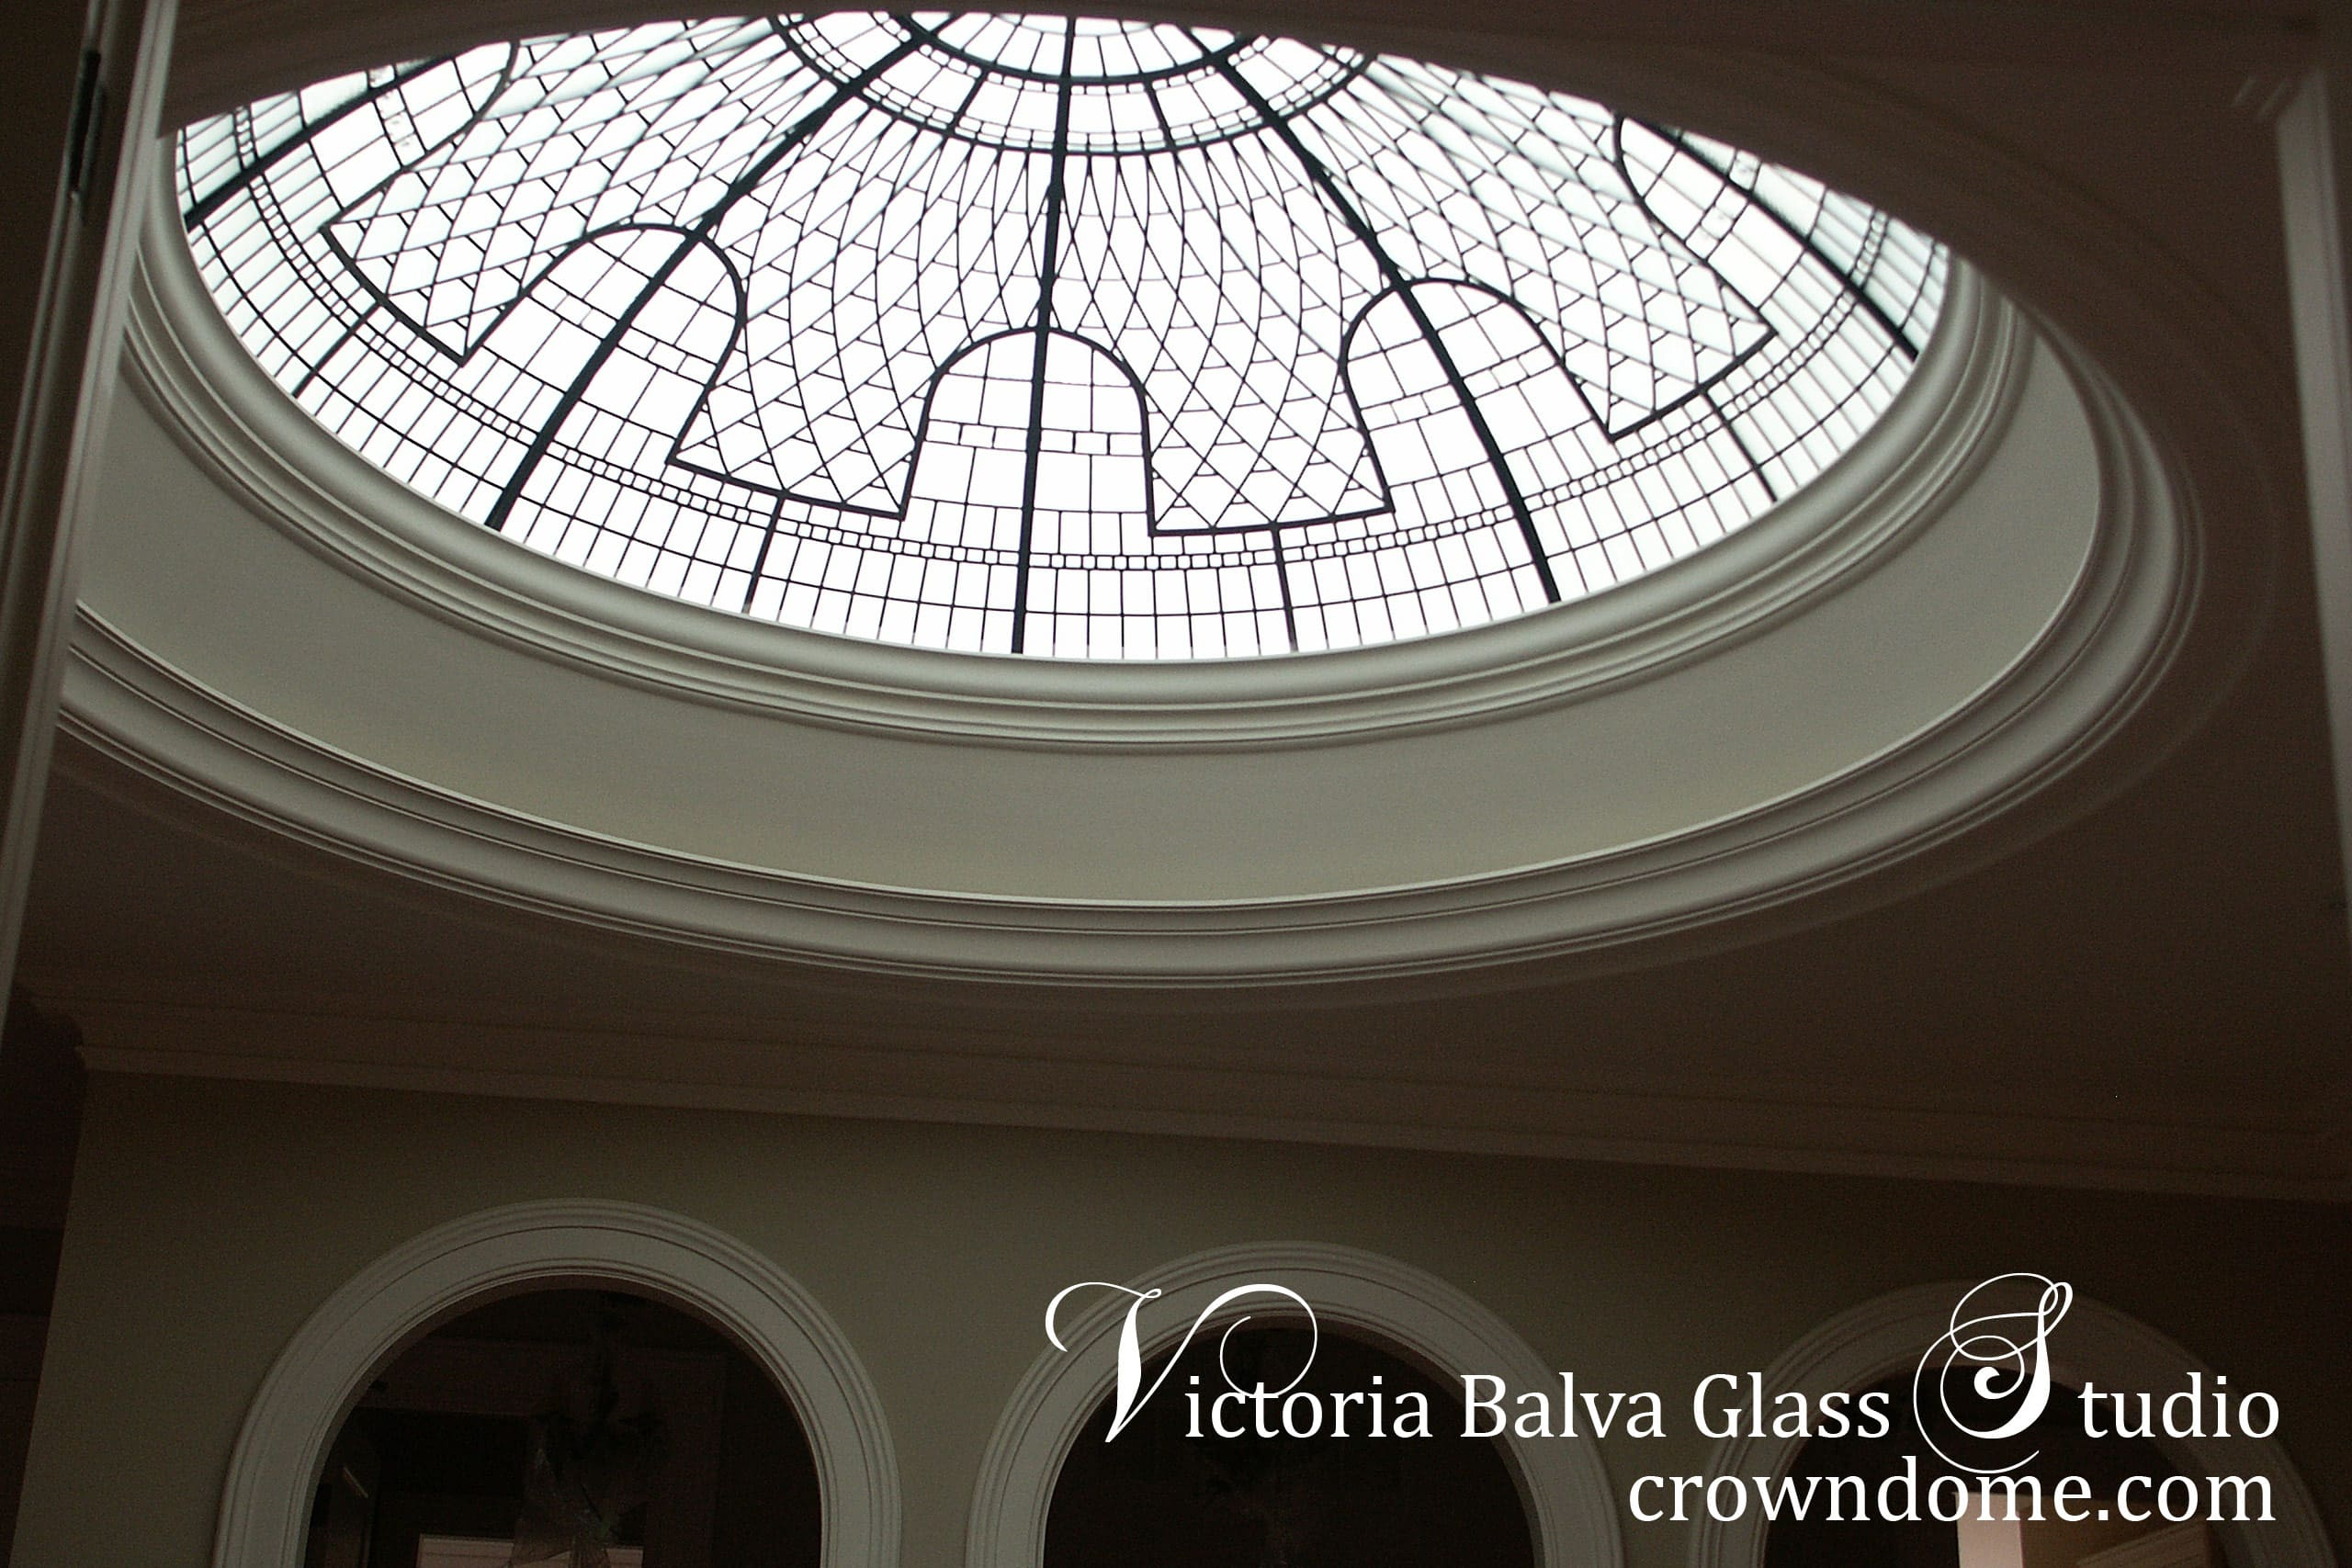 Large custom made leaded glass dome of a hallway of a private residence with clear textured glass, clear crystal jewels and beveled glass to provide light and style to the space below. Arch elements of the glass dome are in combination with hallway arches